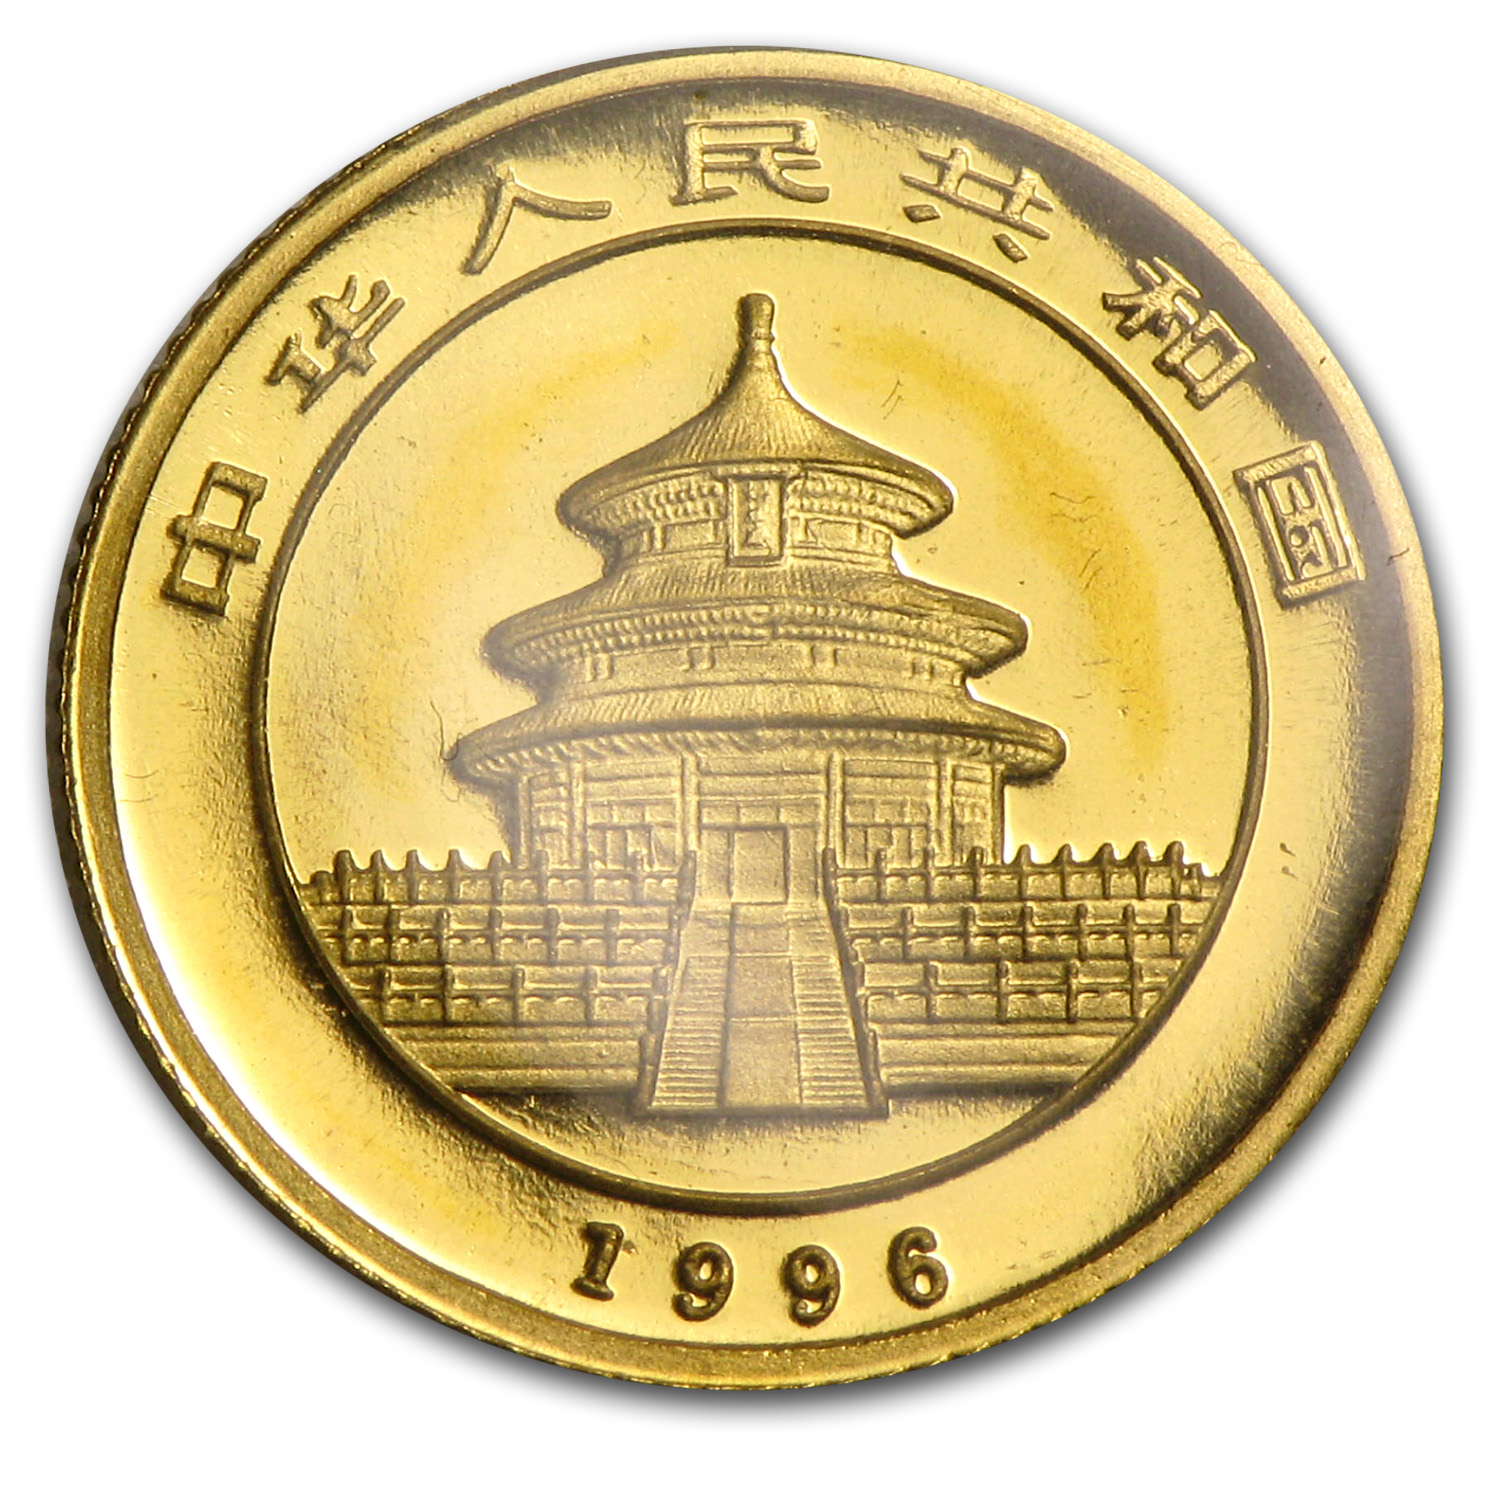 1996 China 1/10 oz Gold Panda Small Date BU (Sealed)